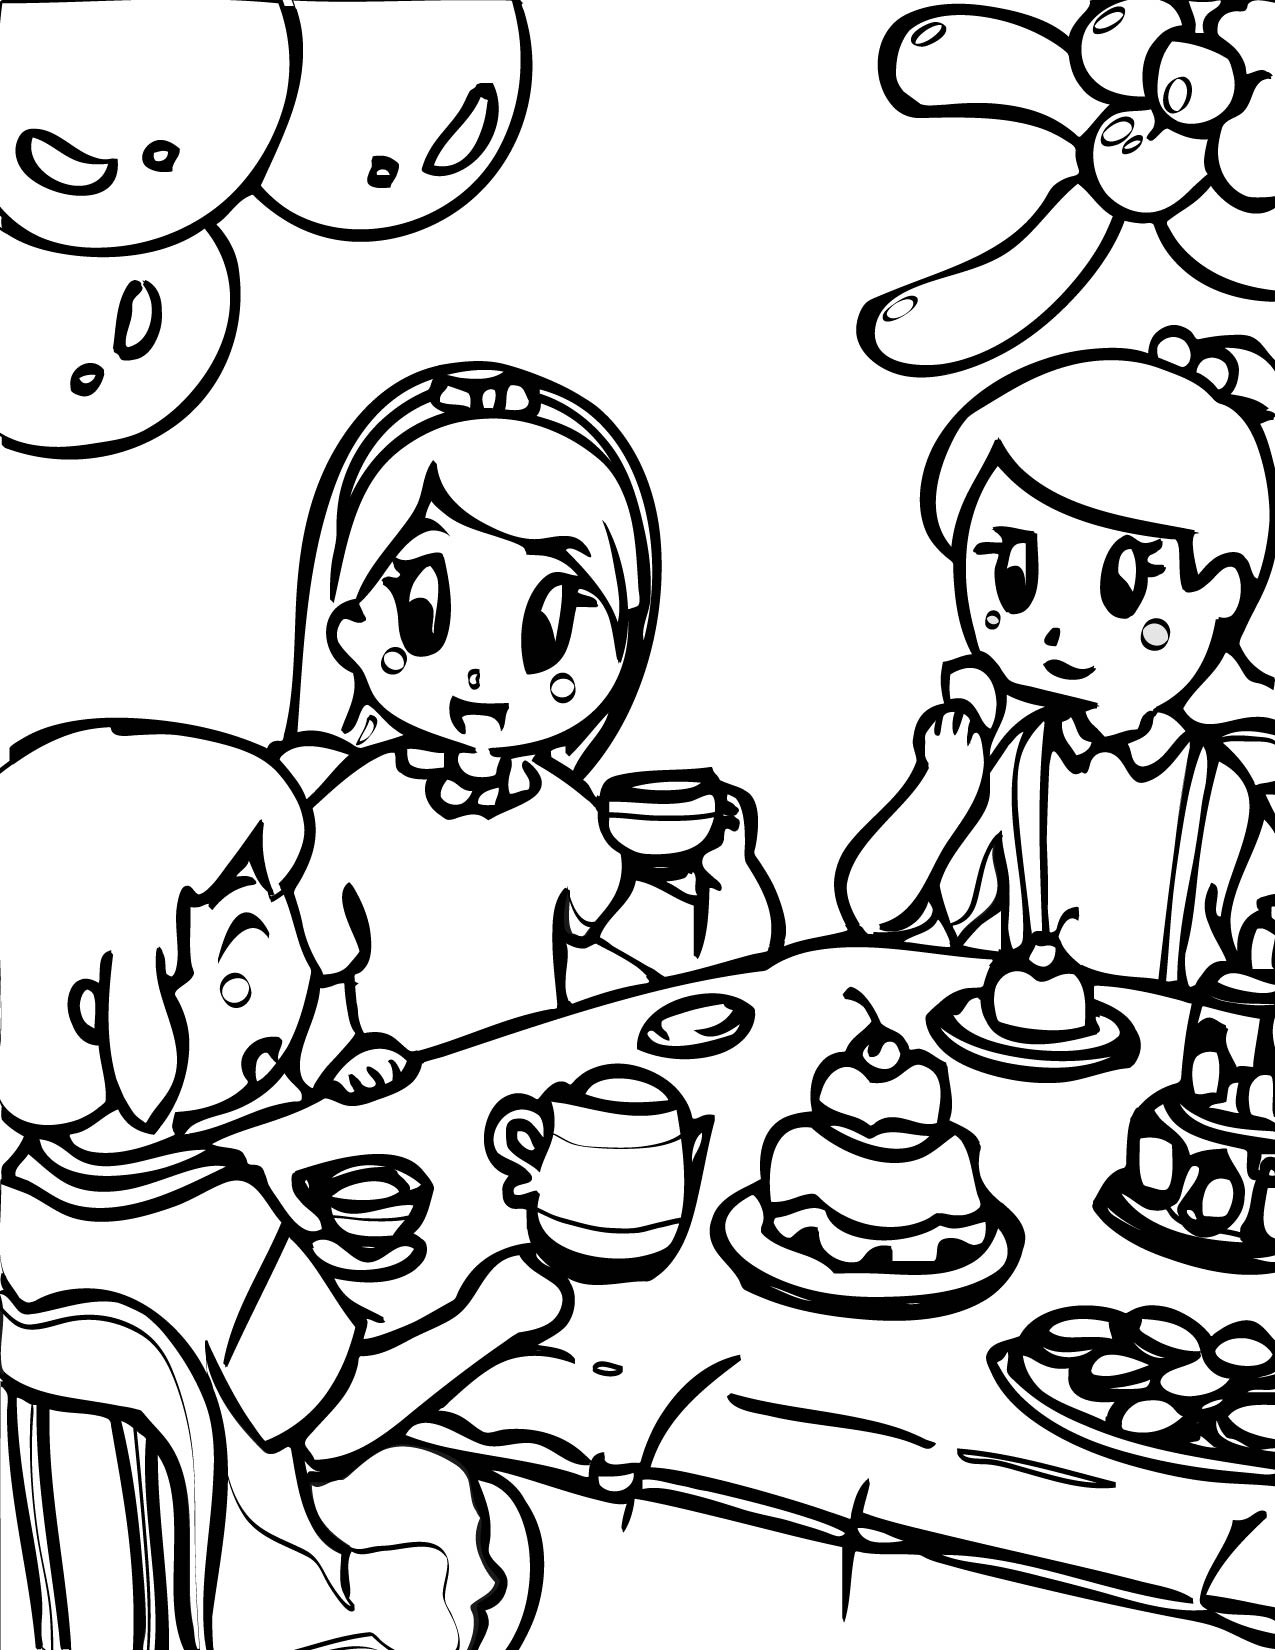 tea party coloring pages tea party coloring pages party tea coloring pages